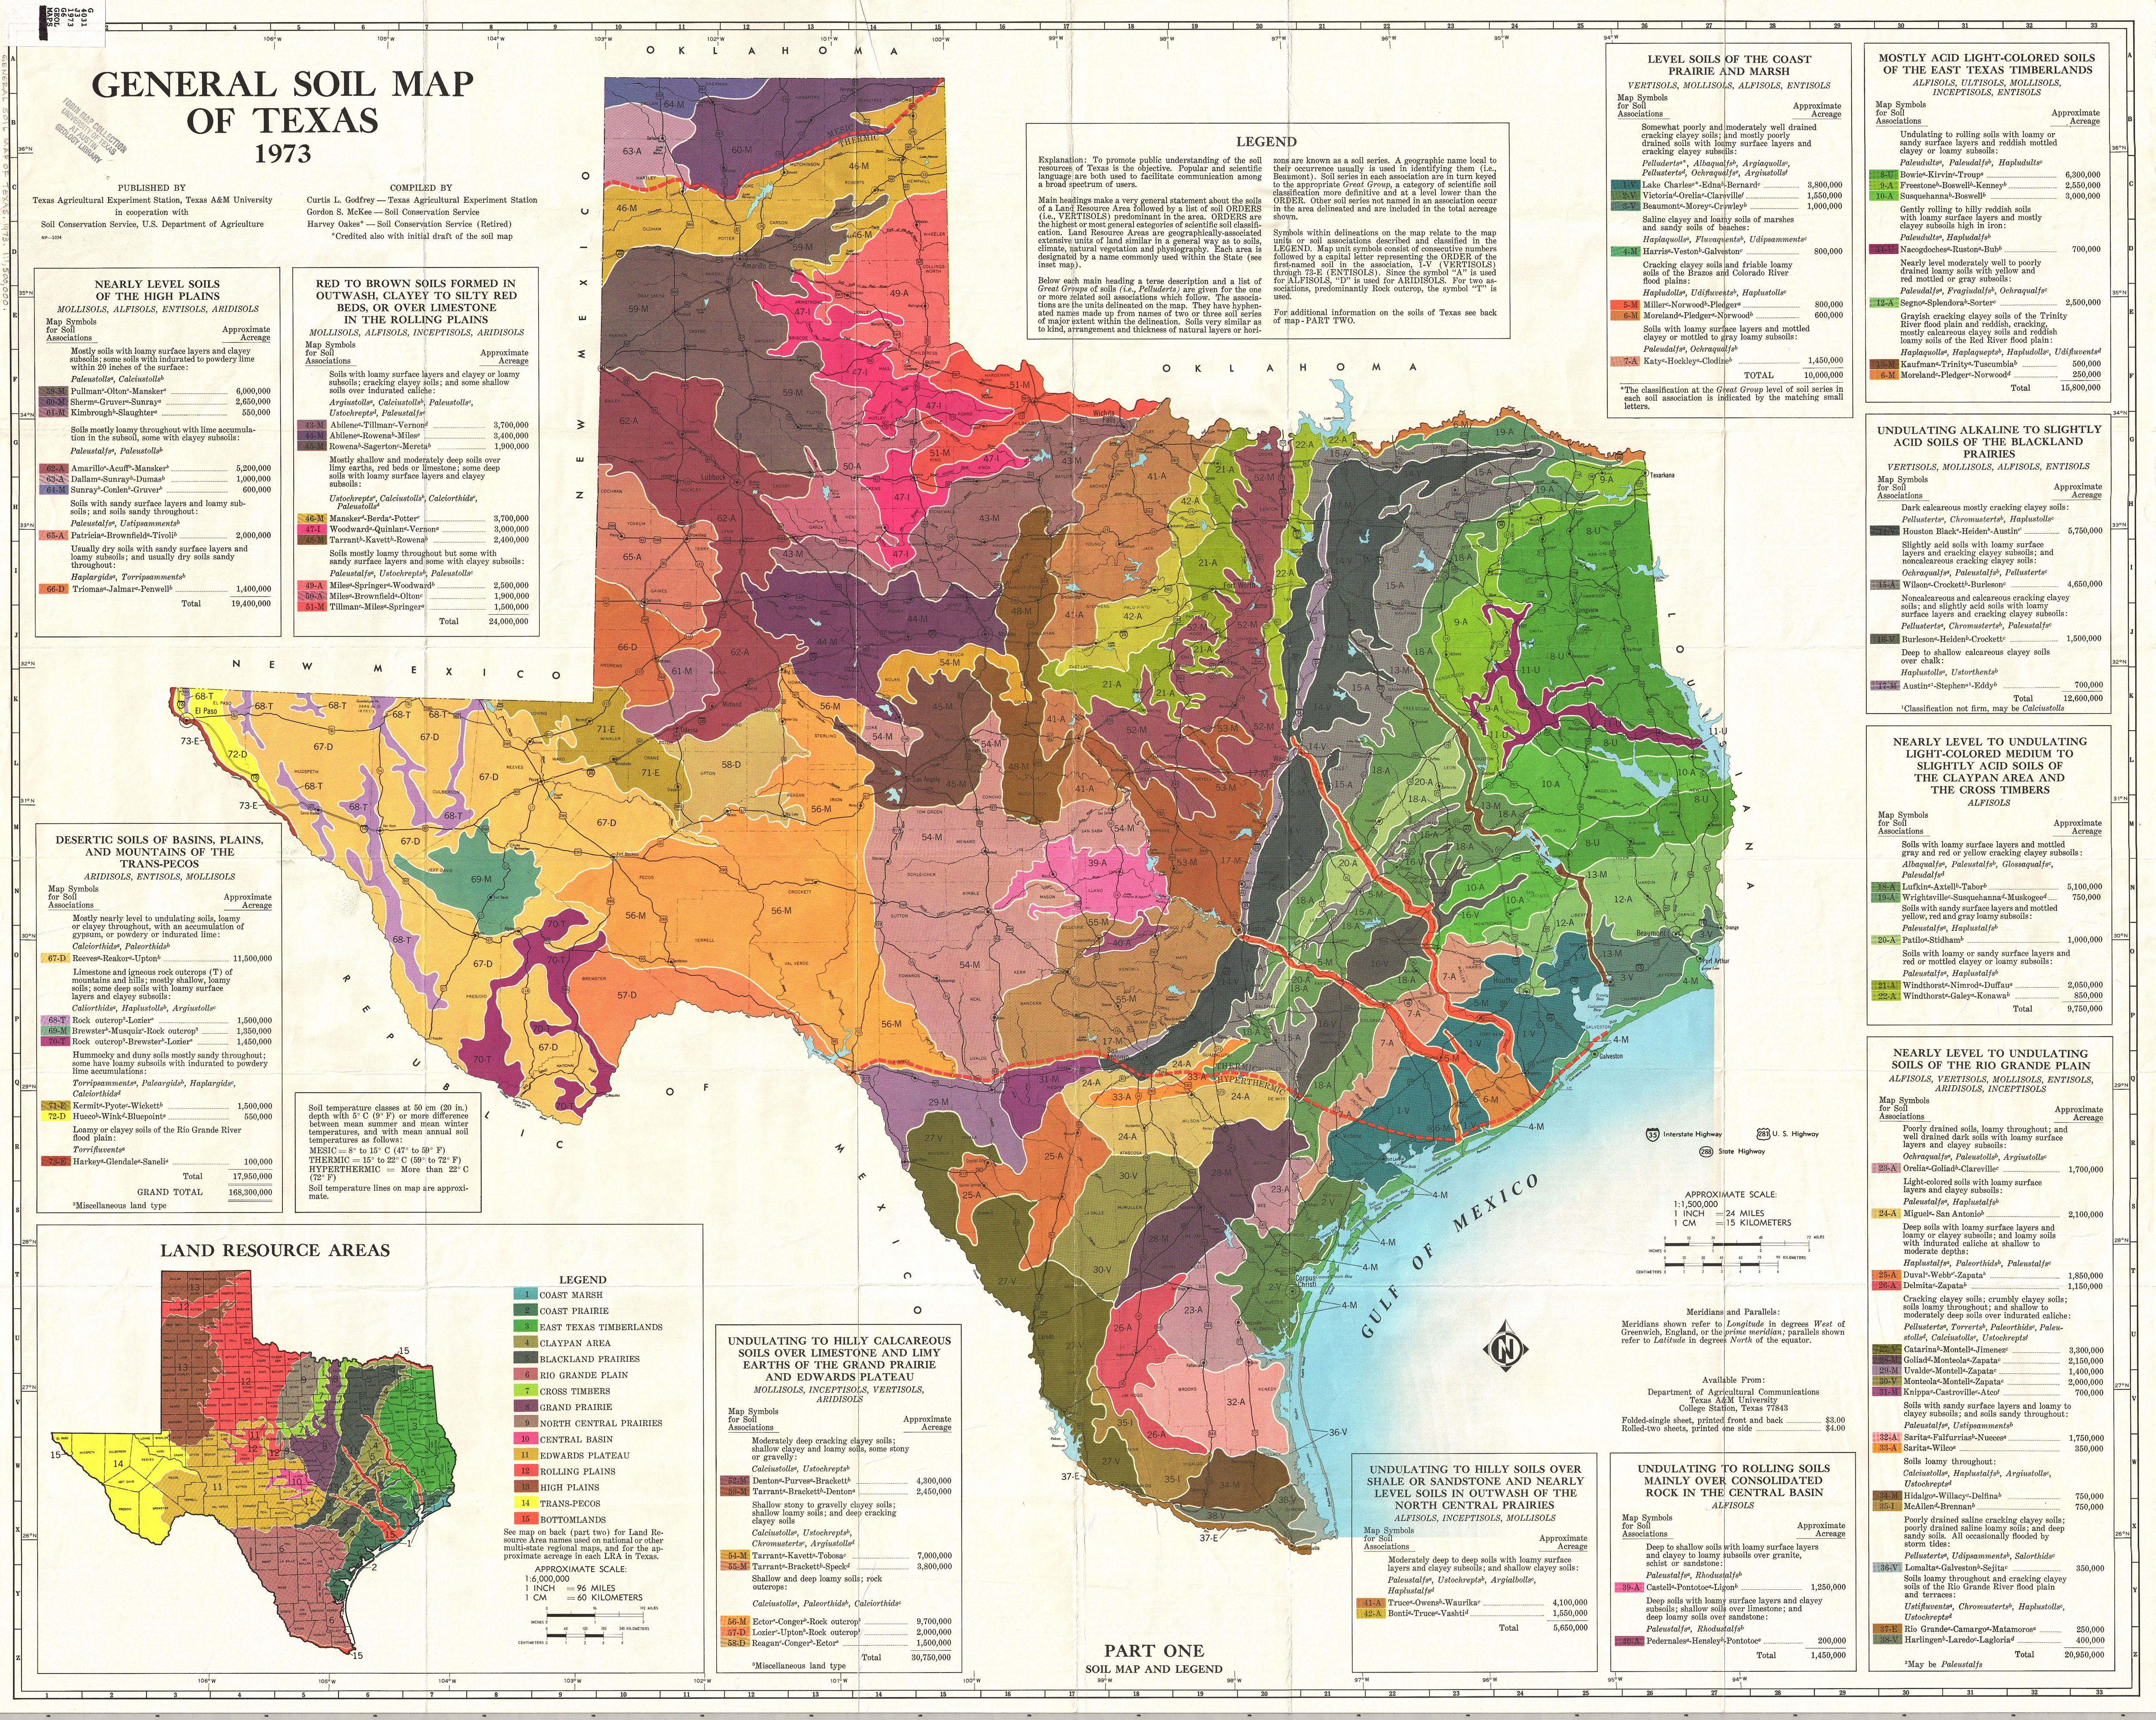 Texas Soil Map 1973 General Soil Map of Texas, produced by Texas A&M | Texas map